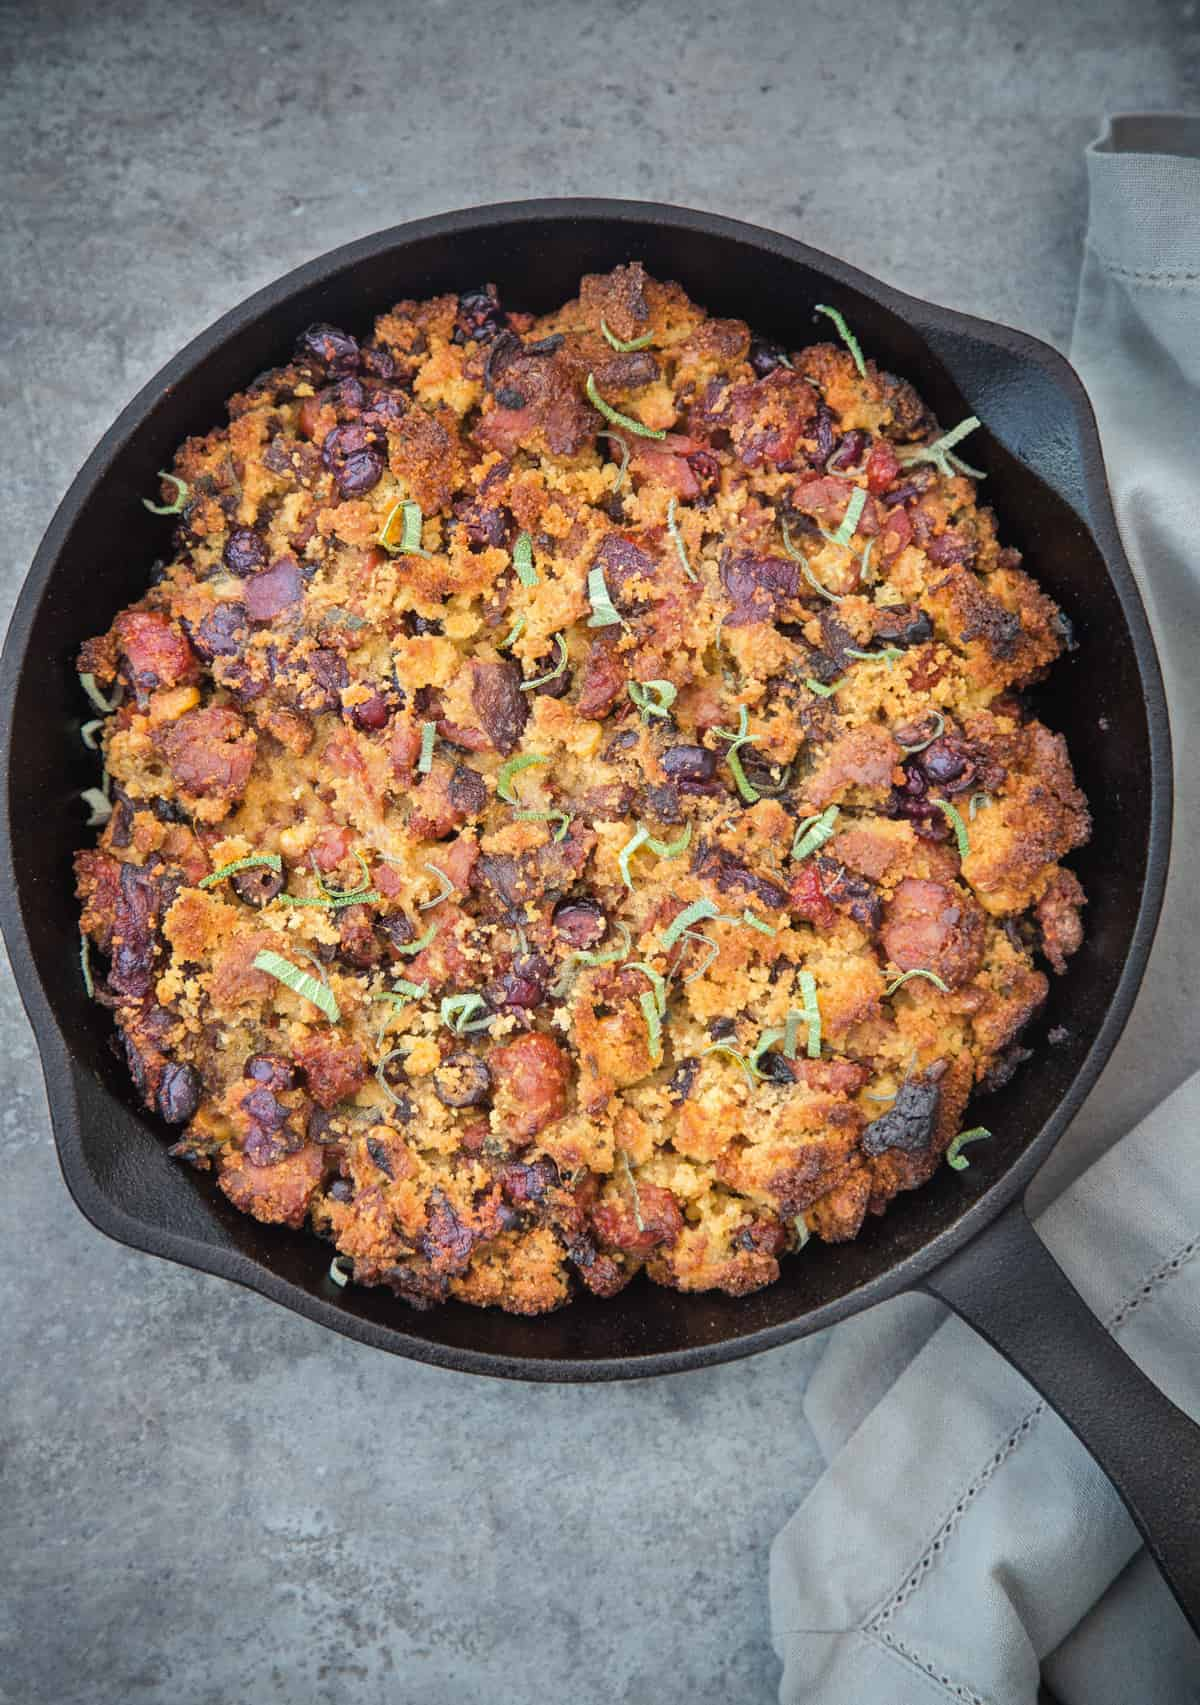 Smoked Sausage Cornbread stuffing in a cast iron pan.